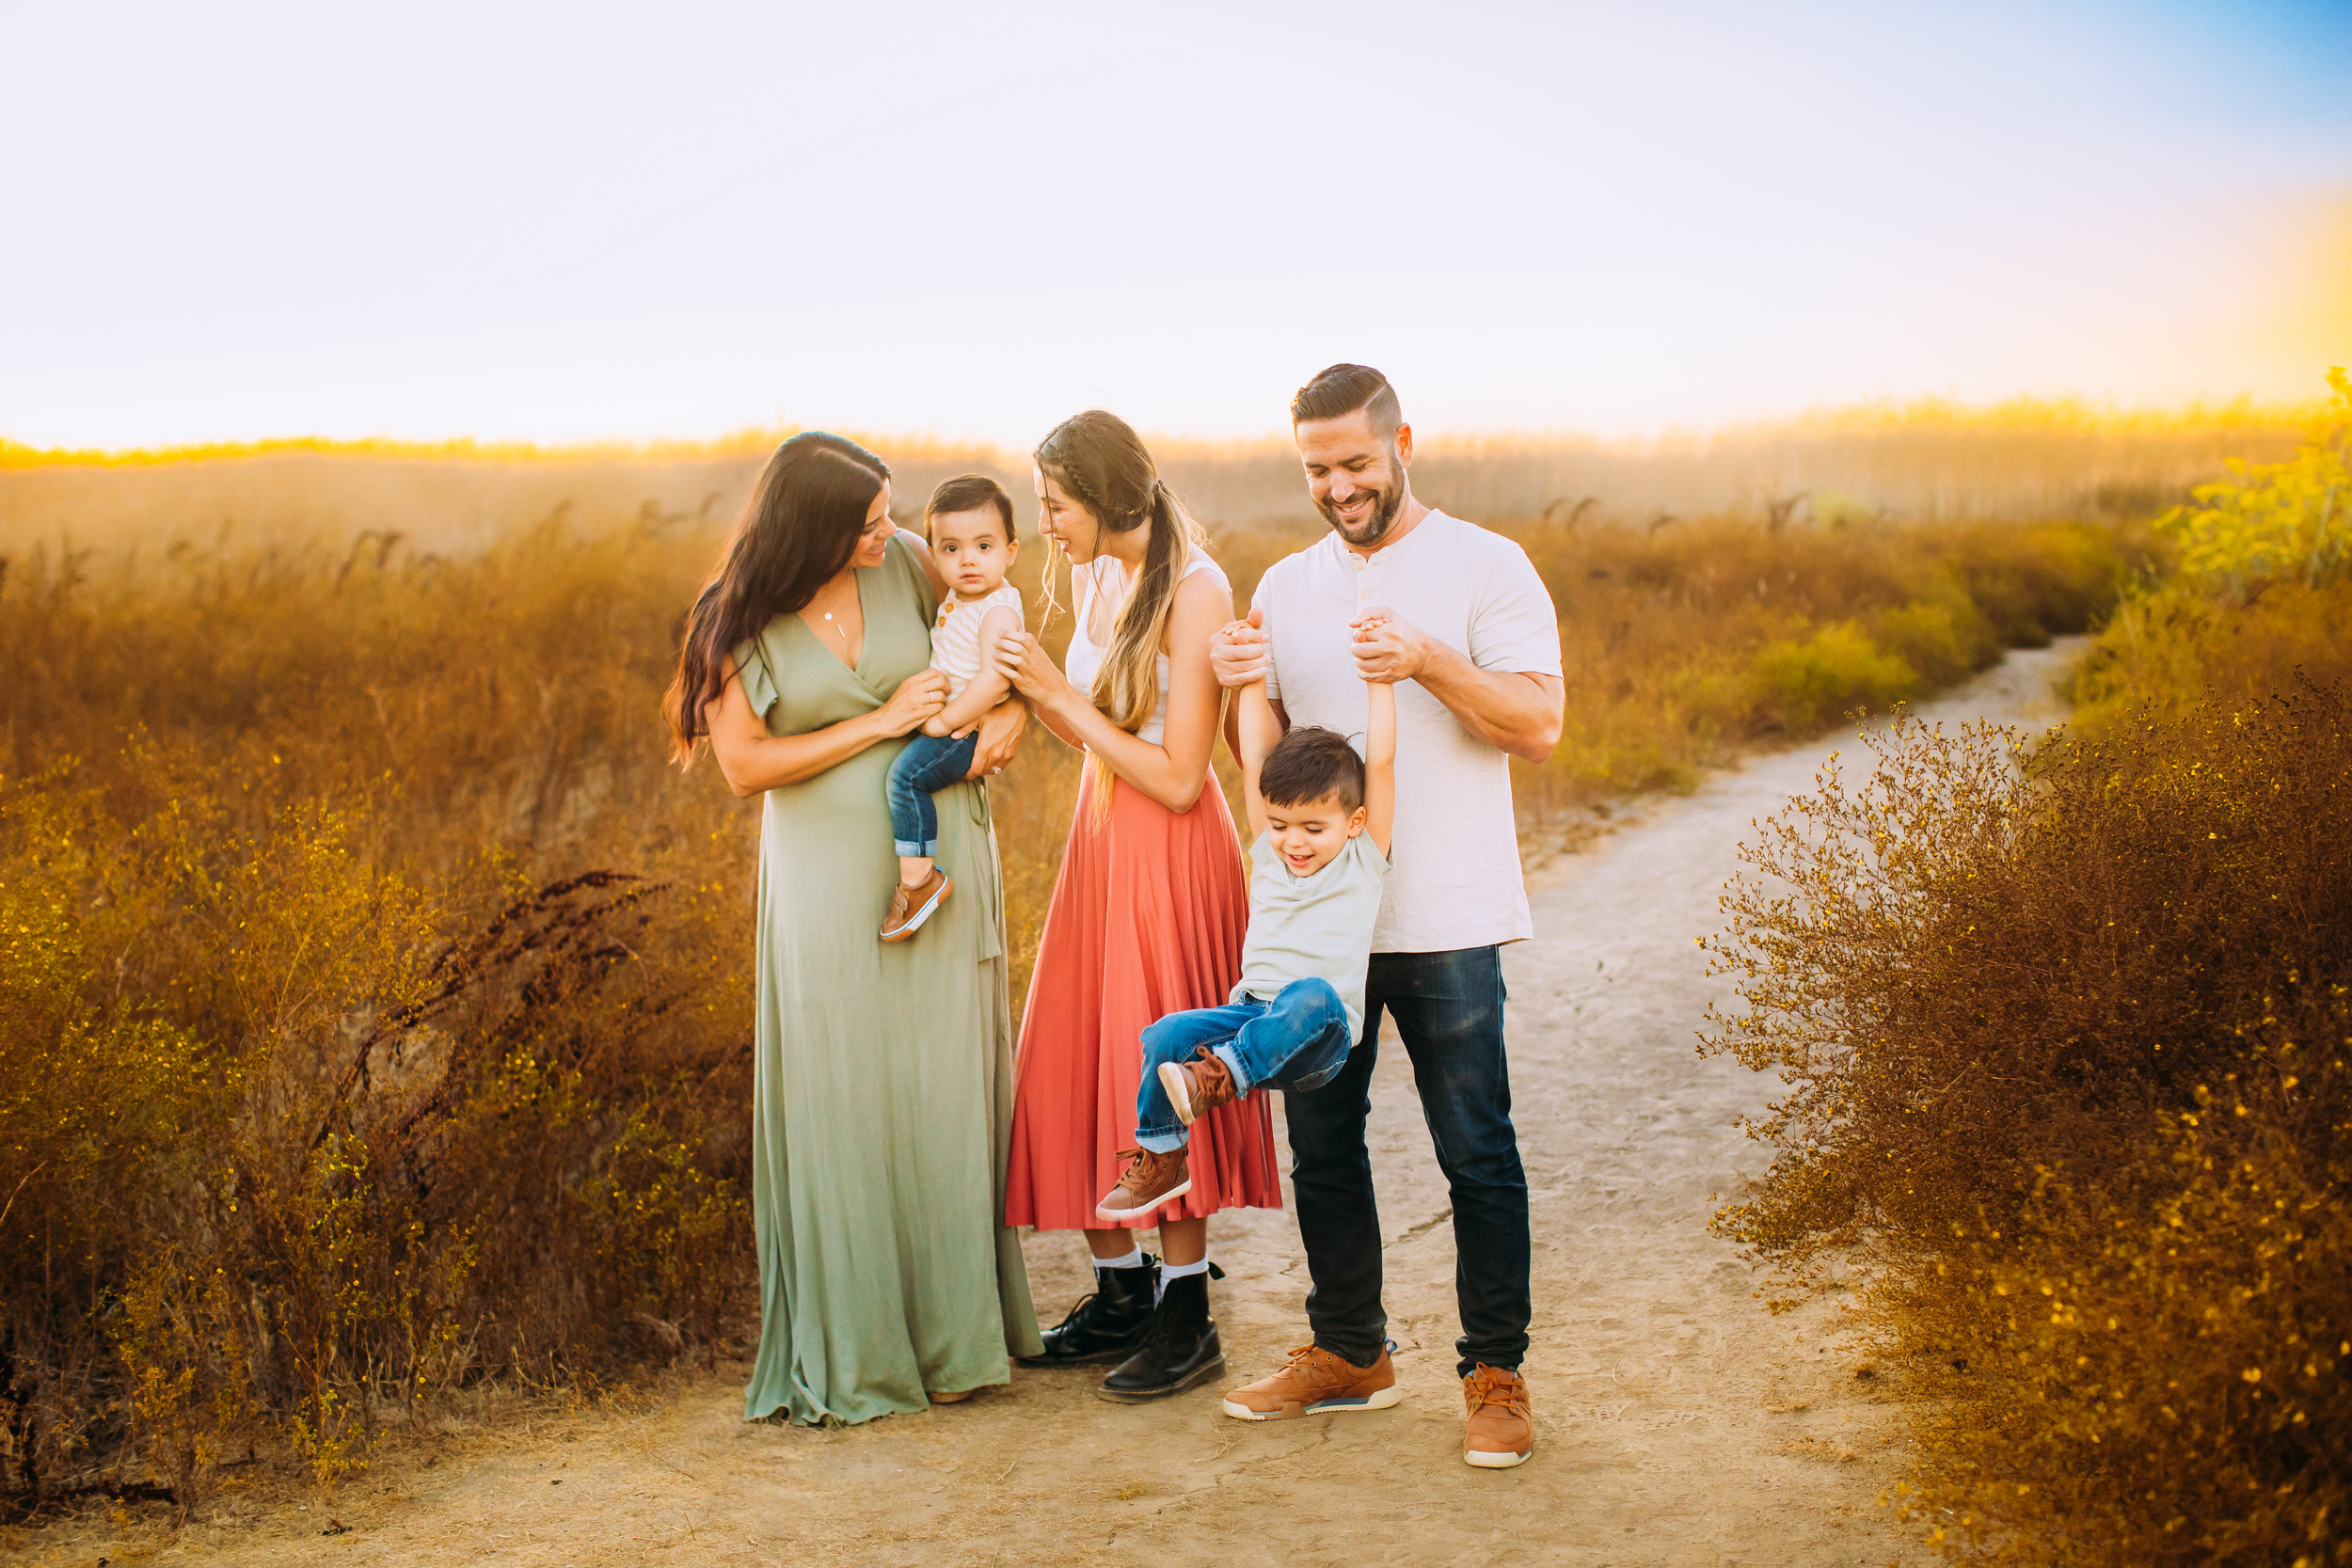 outdoor family photo session in Orange County, CA